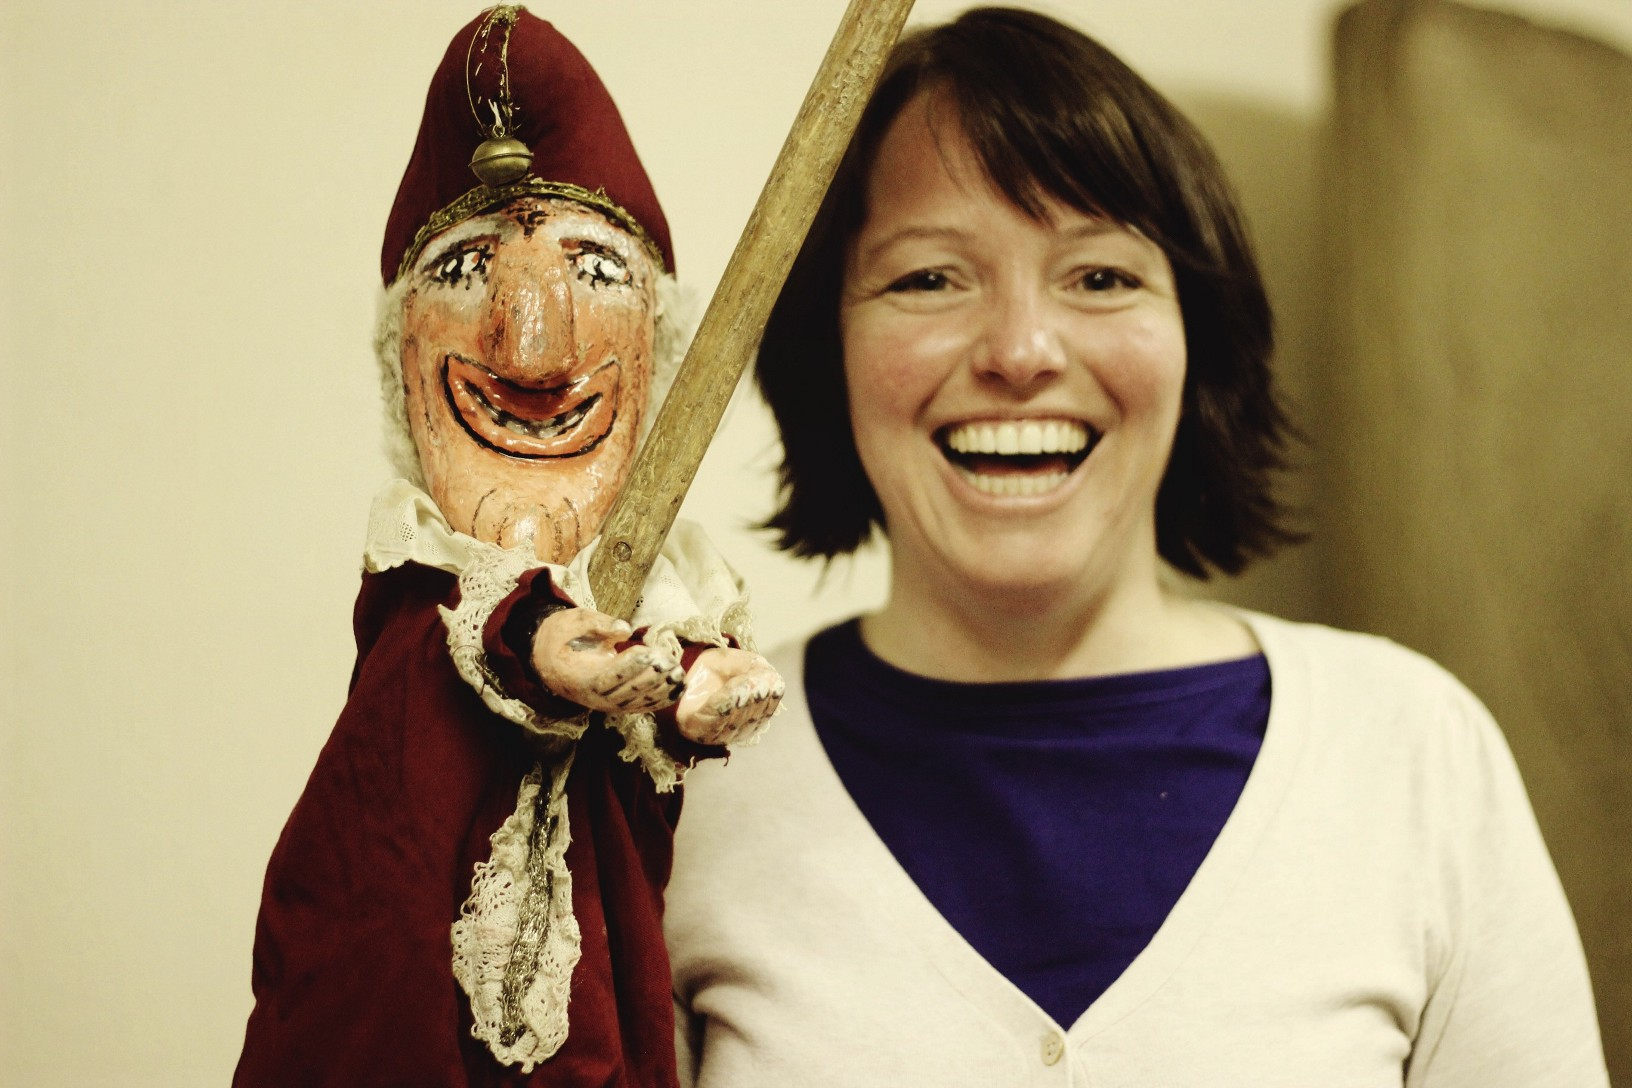 Barbara Punch puppet pic